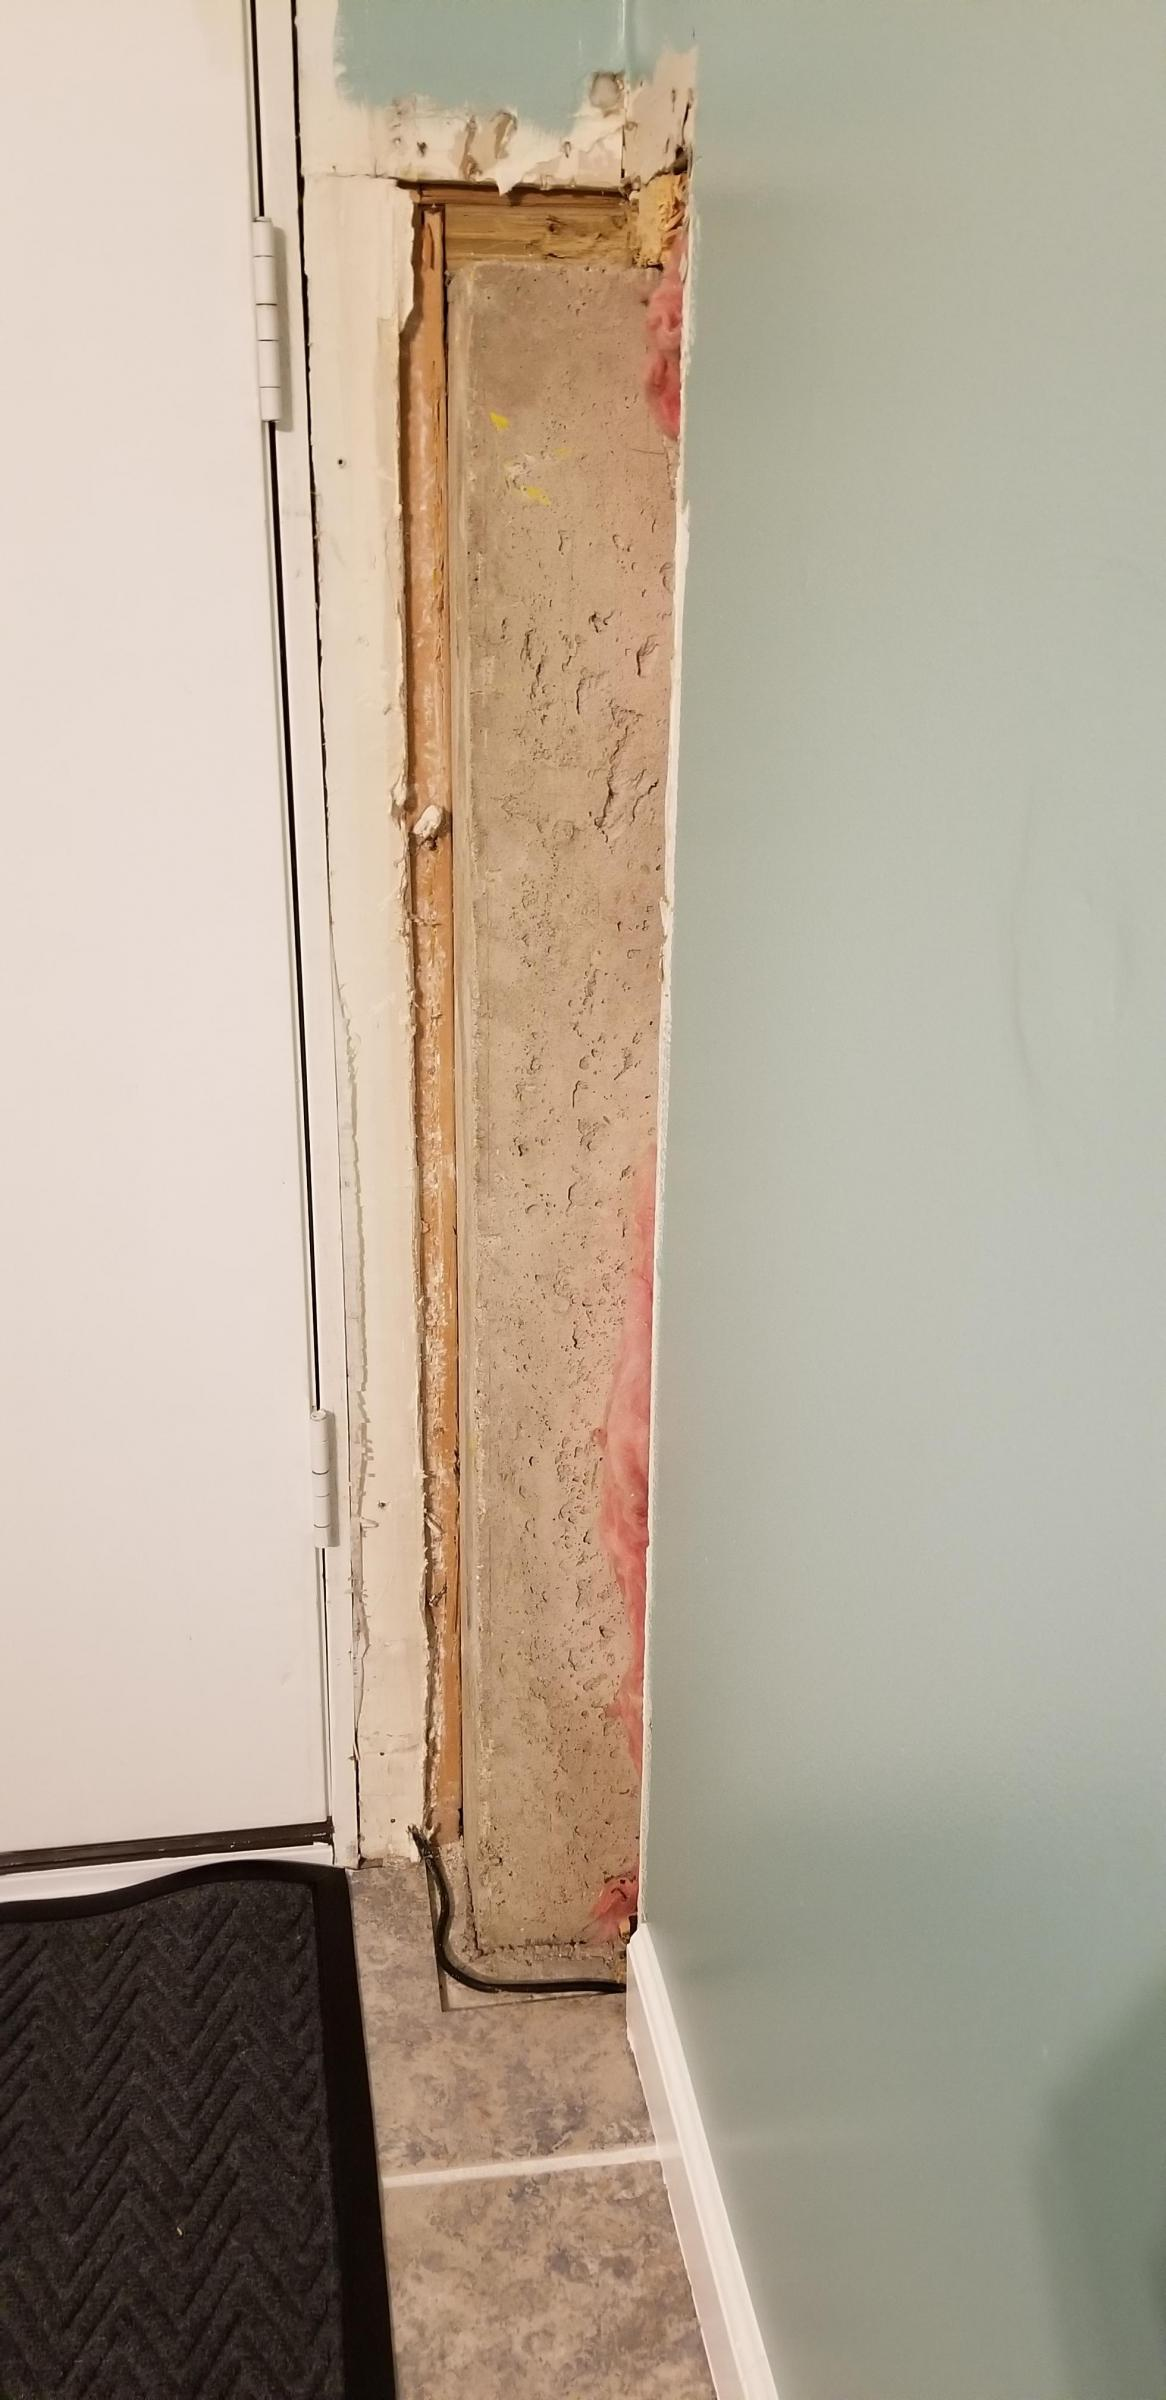 Covering this exposed corner an easy way?-15713092739662871472721363974626_1571309287125.jpg